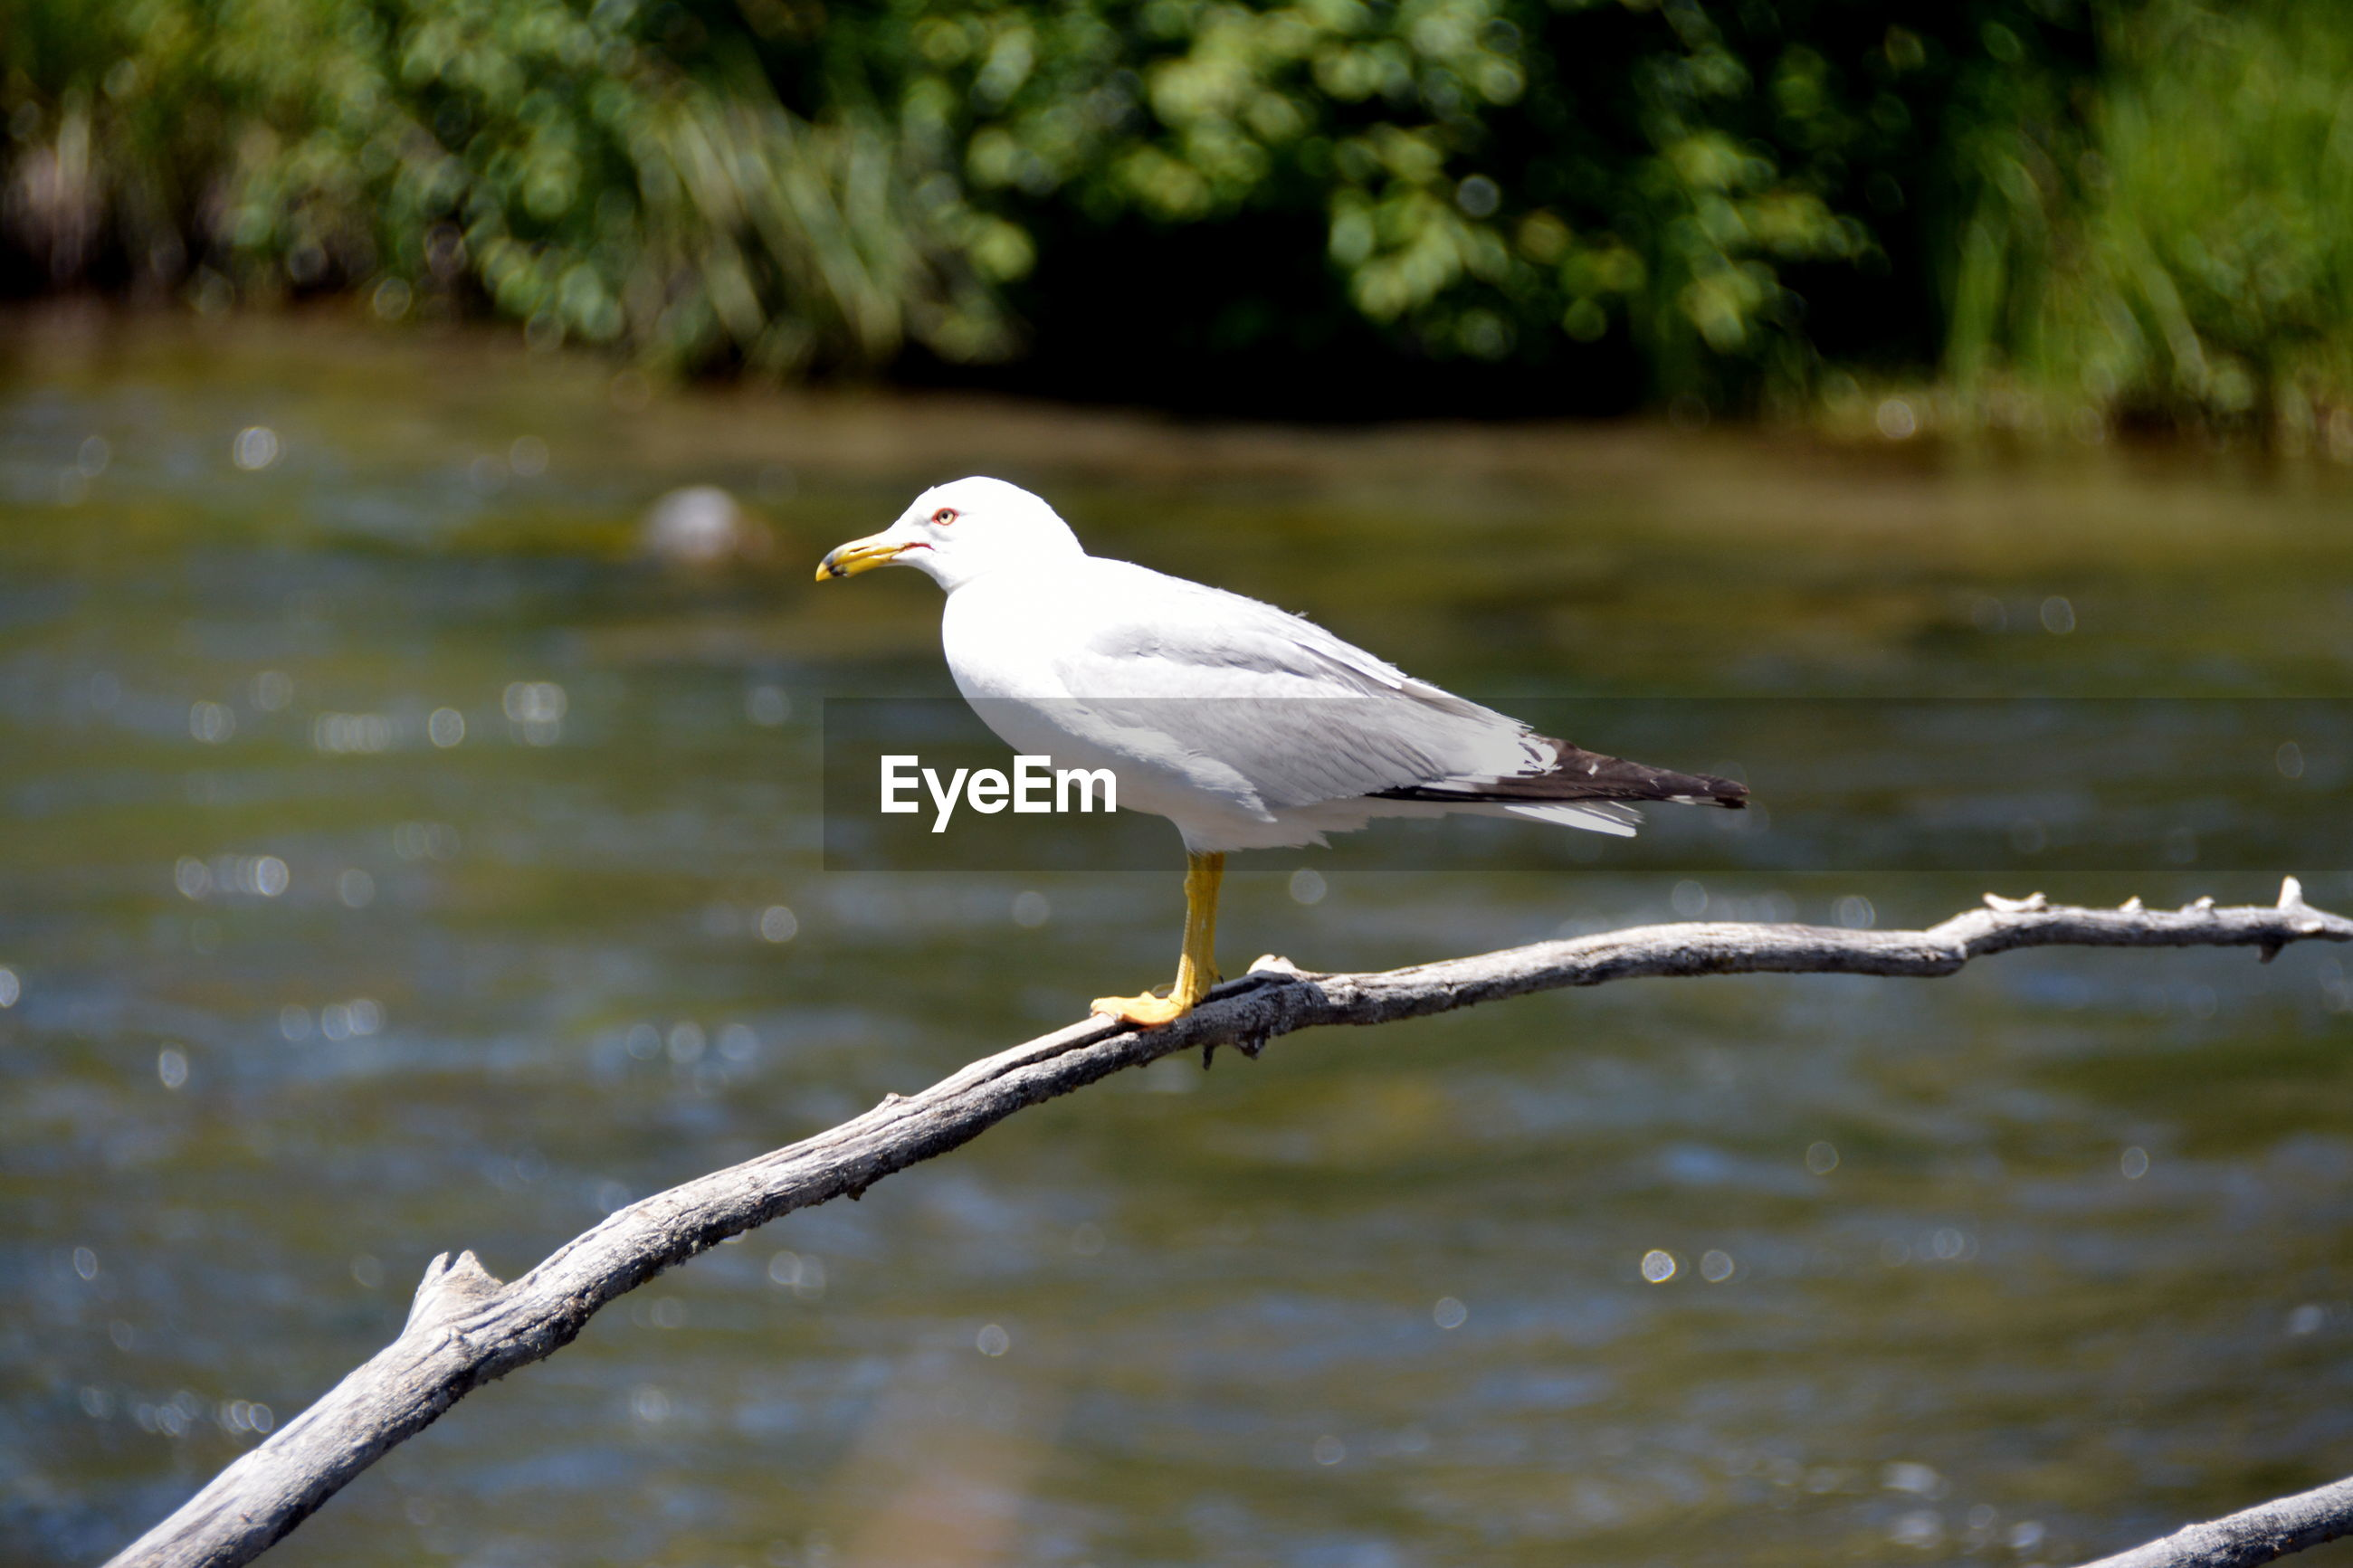 Seagull perching on branch over lake